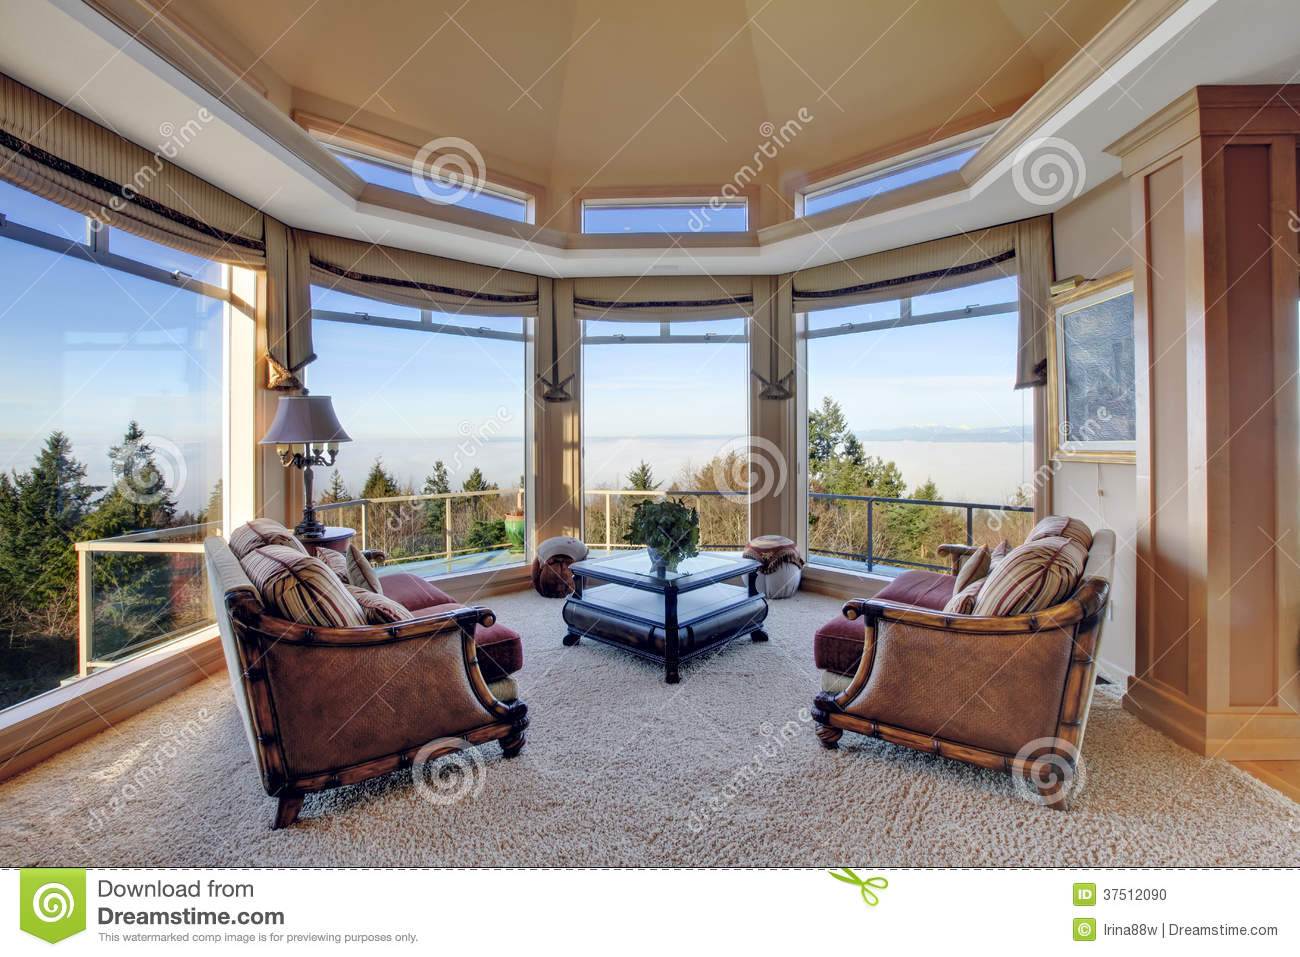 Amazing Rich Interior With Stunning Window View On